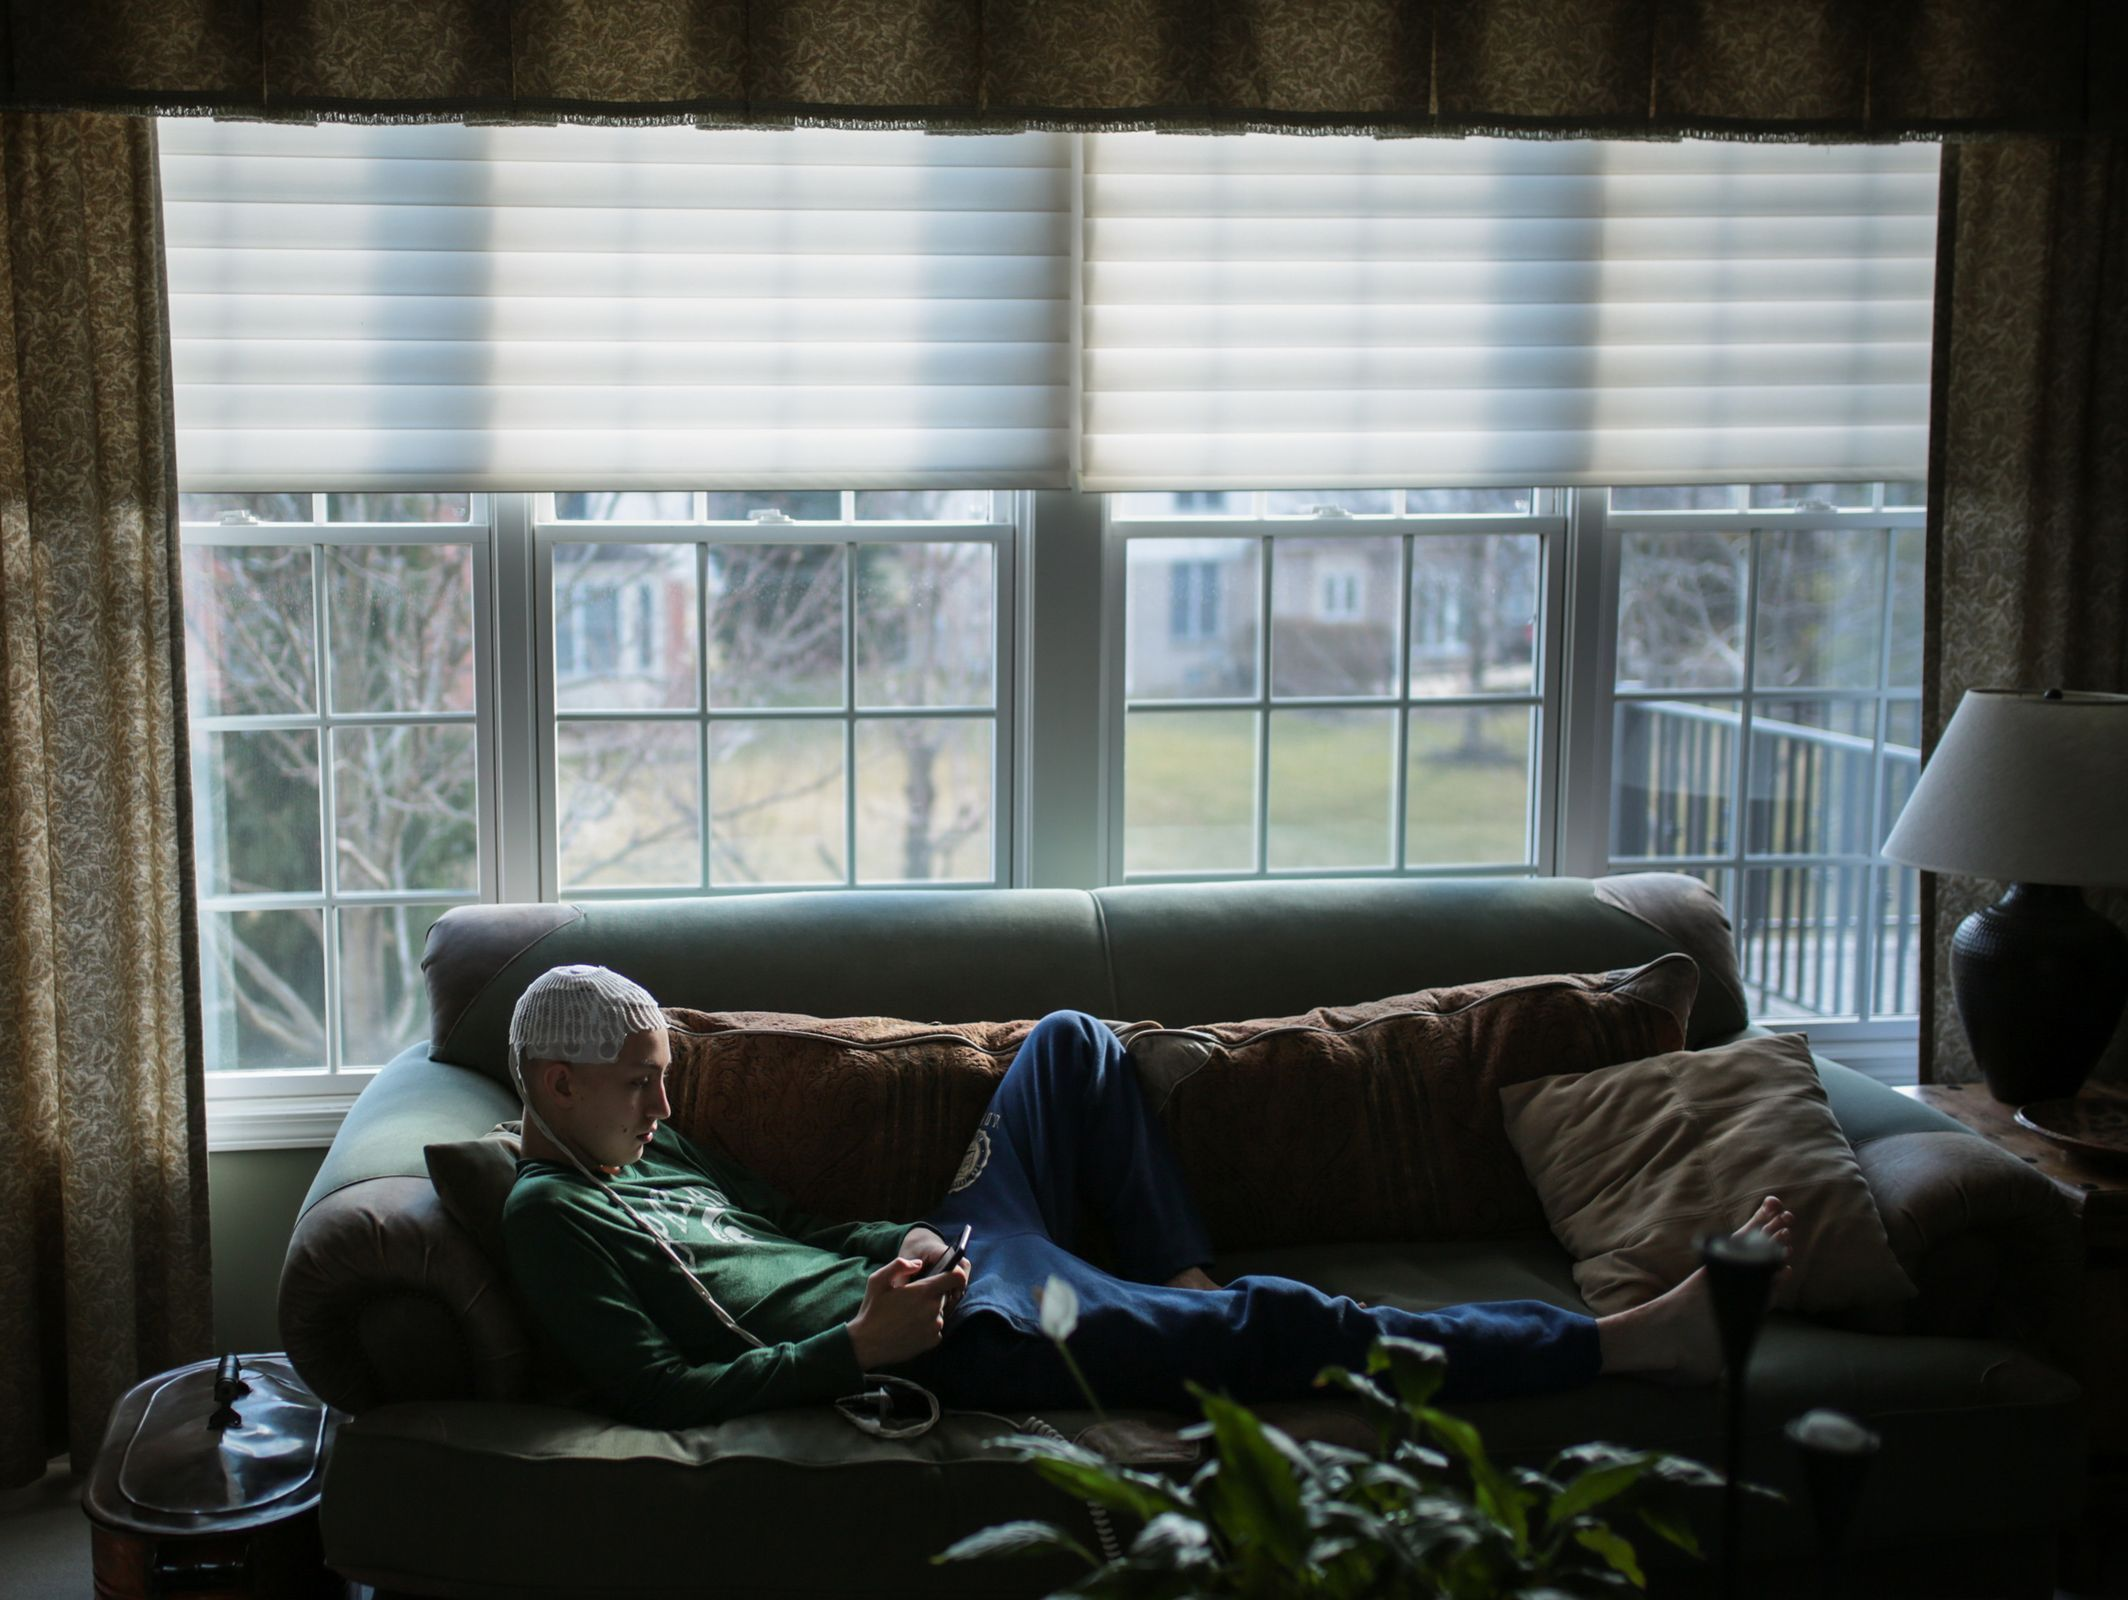 Sam Kell, 16, of Rochester, rests on a coach in the living room of his home on Saturday March 11, 2017 in Rochester.